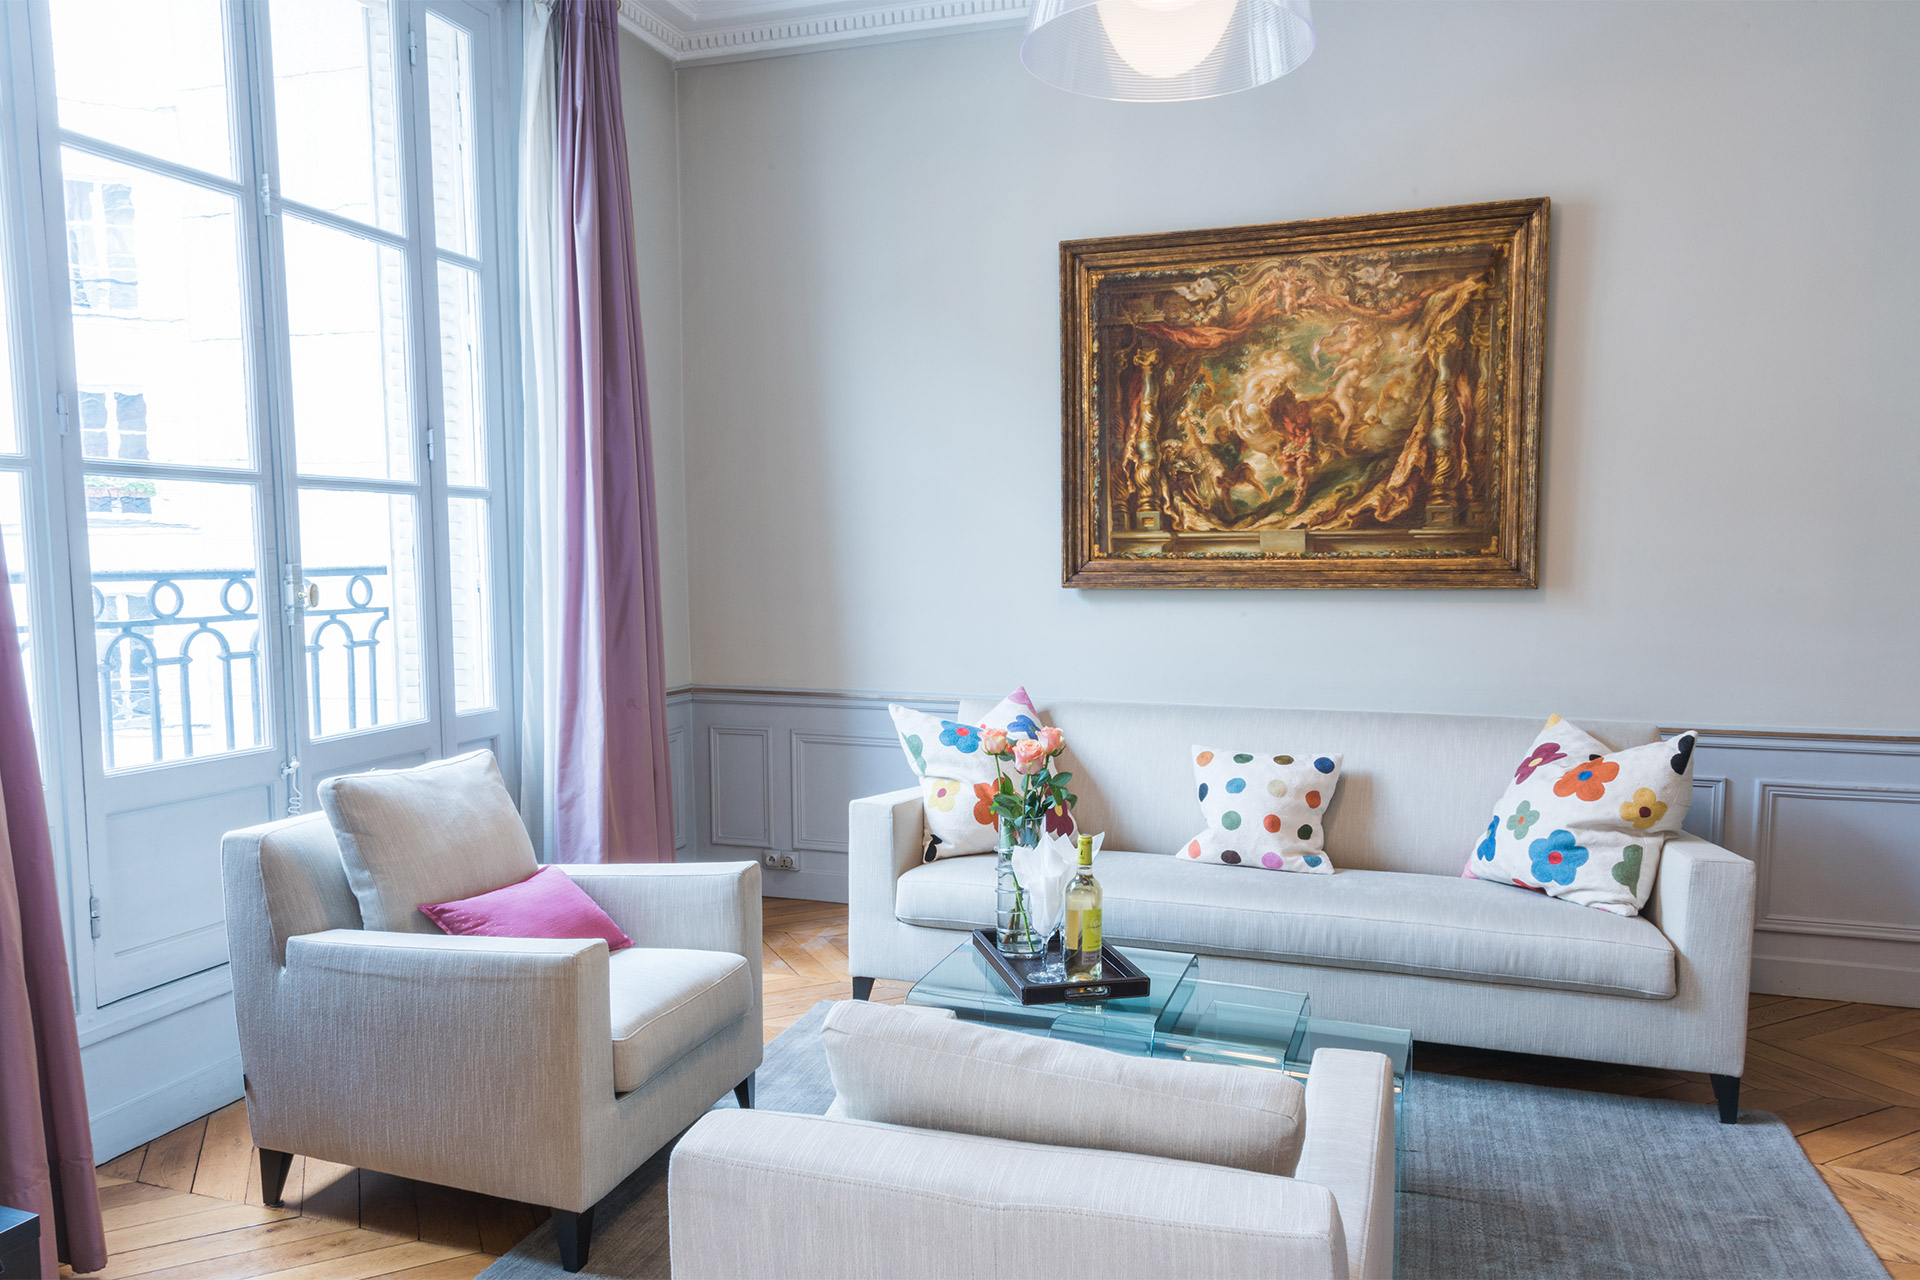 Sunlight streams through the large French windows in the Mâcon vacation rental offered by Paris Perfect